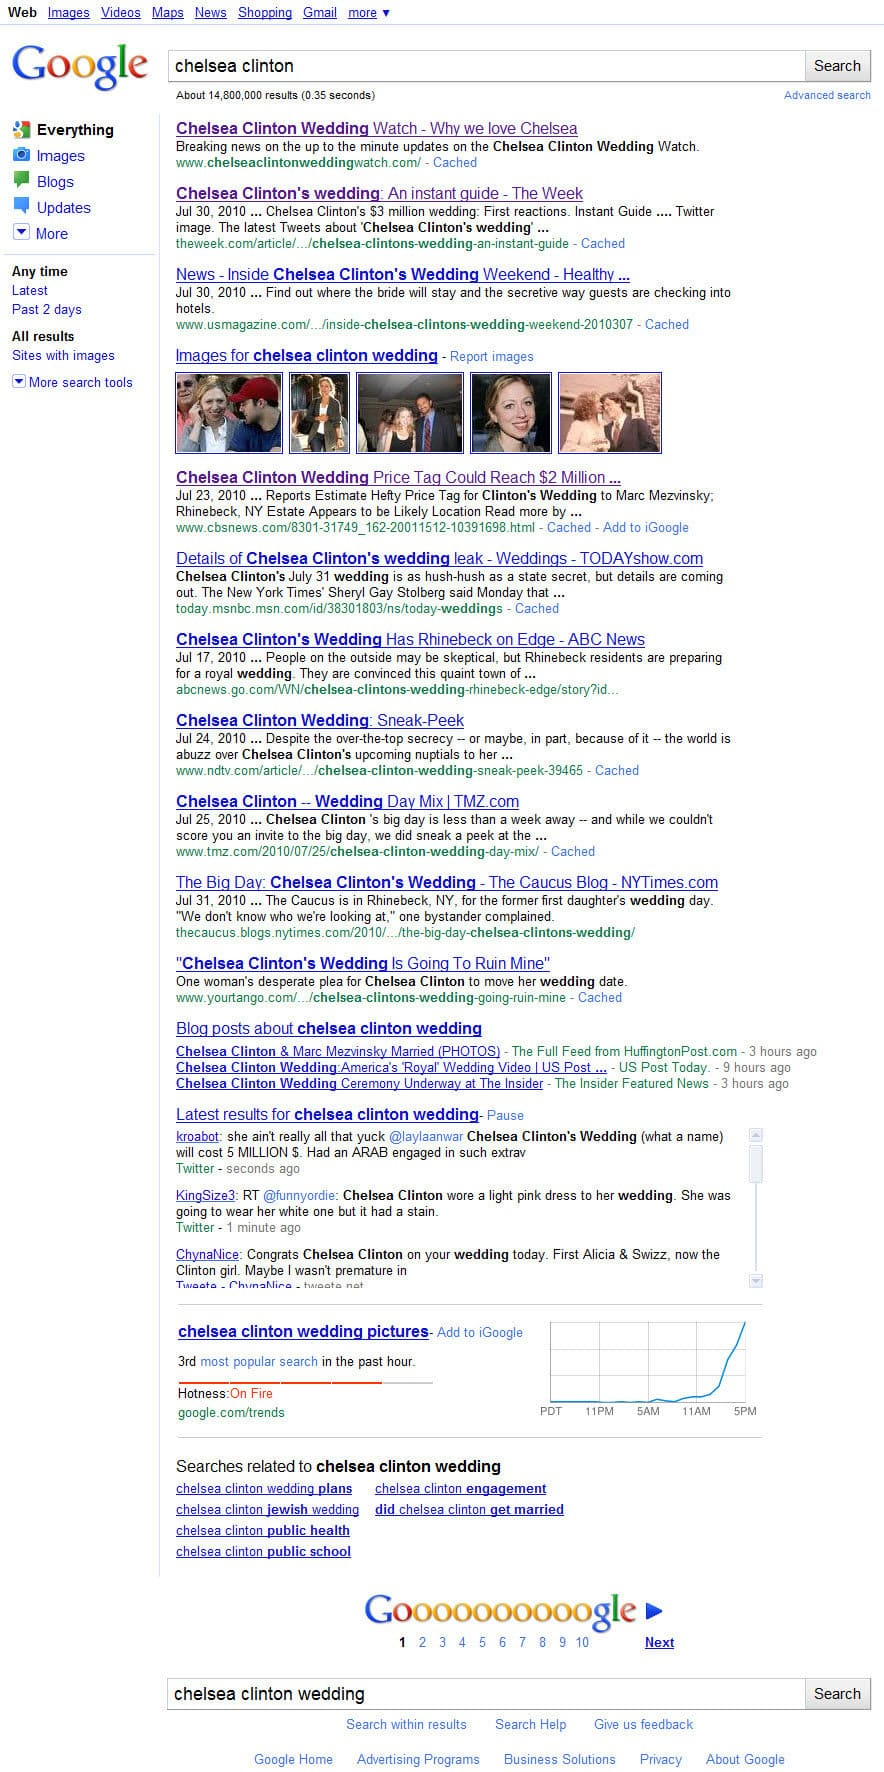 SEO by Glen Woodfin Pushes ChelseaClintonWeddingWatch com to Number 1 on a Google Search for Chelsea Clinton